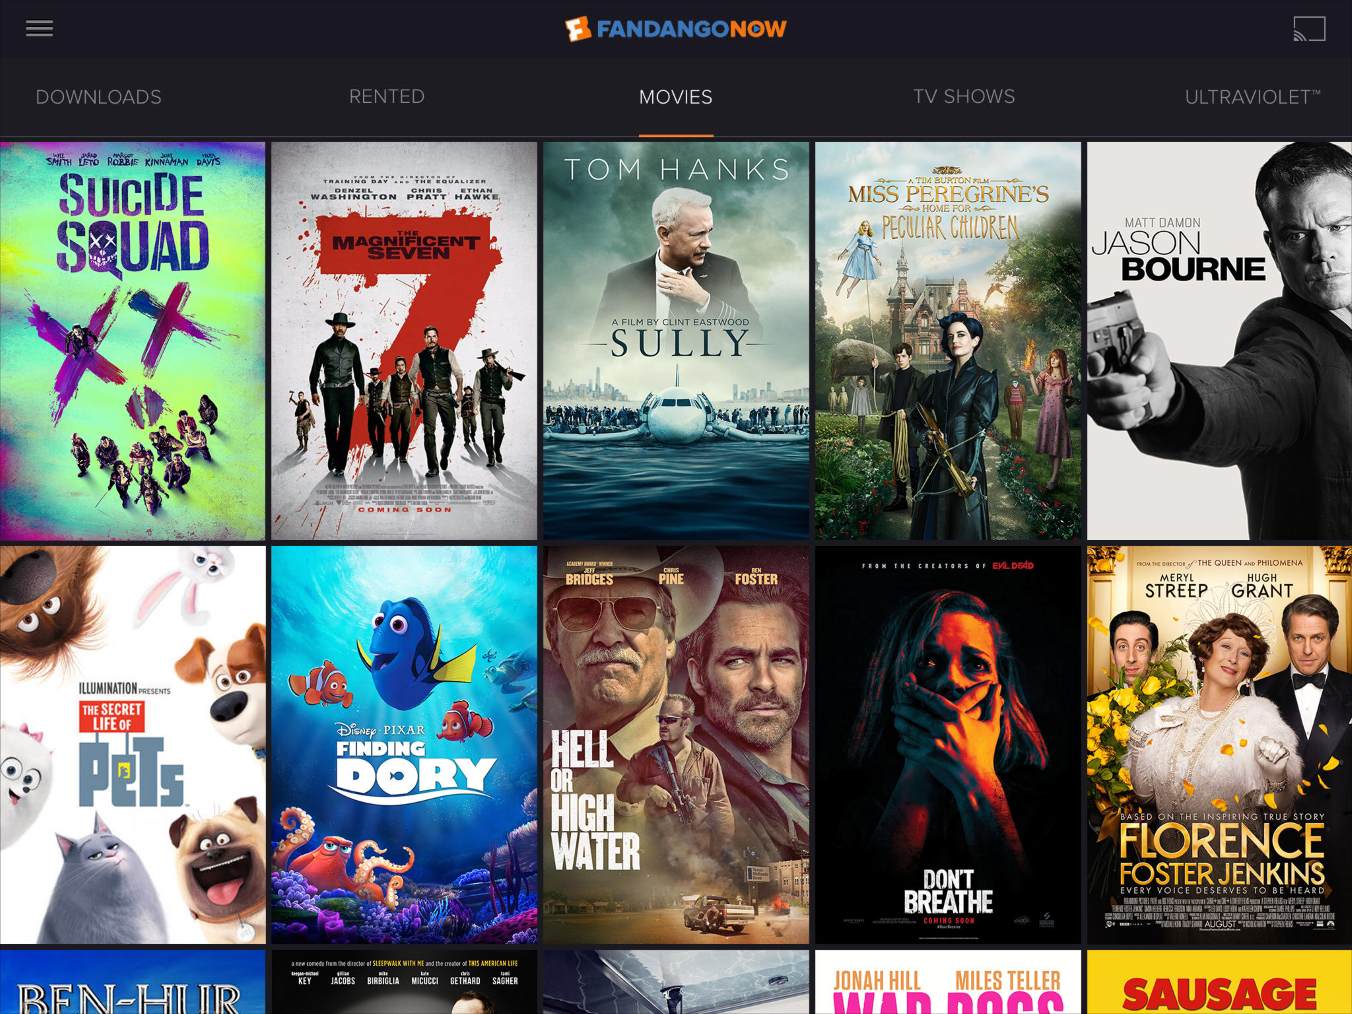 Where Should You Buy Your Digital Movies?